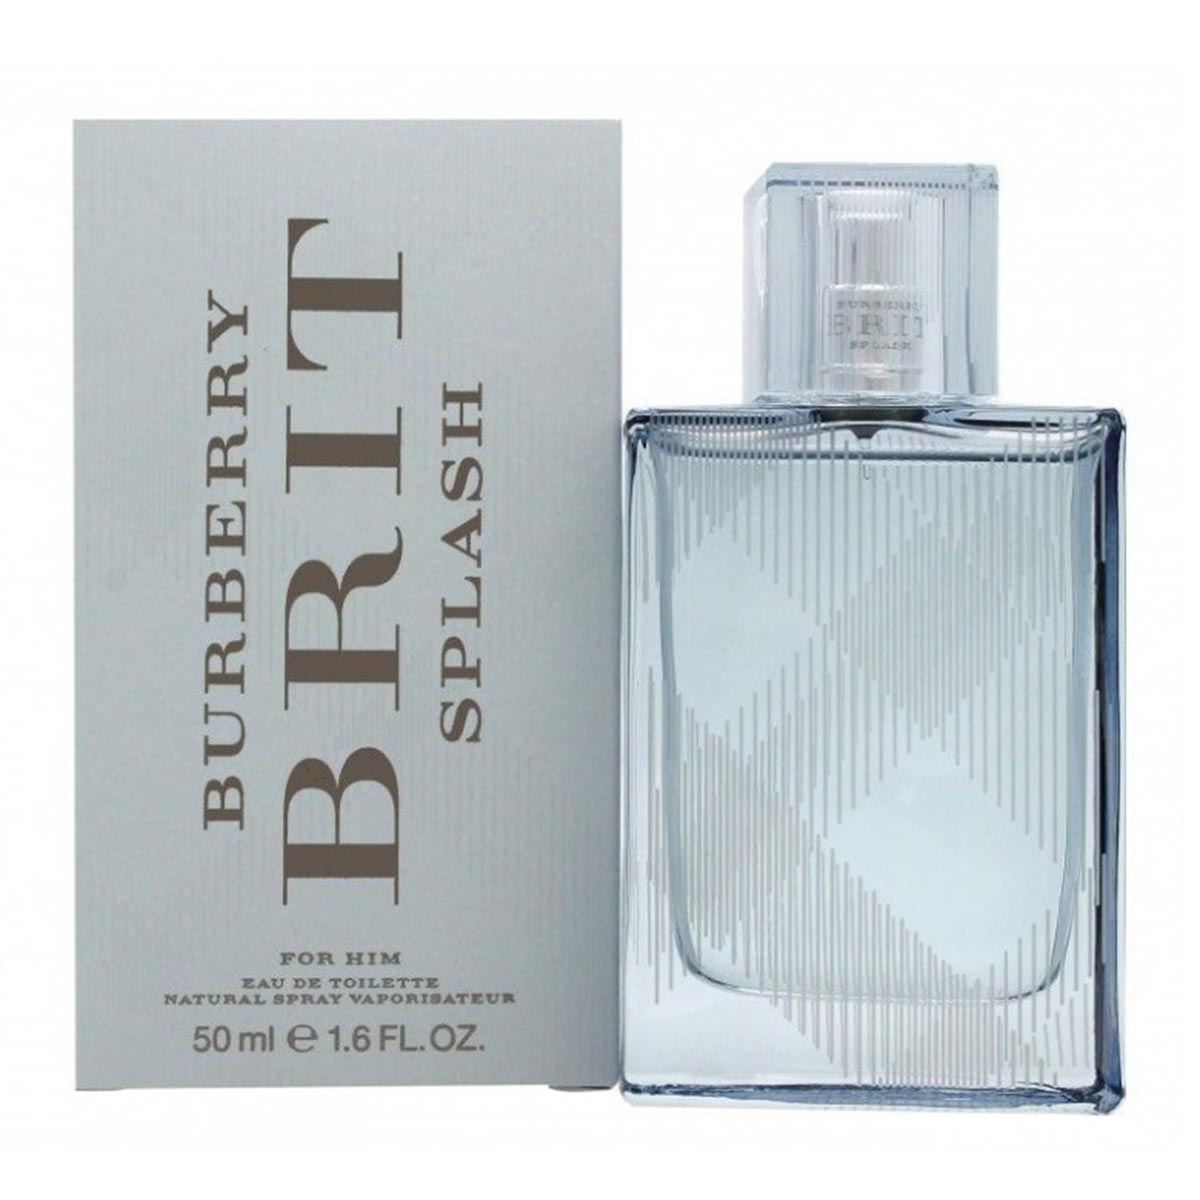 Burberry brit splash eau de toilette for him 50ml vaporizador